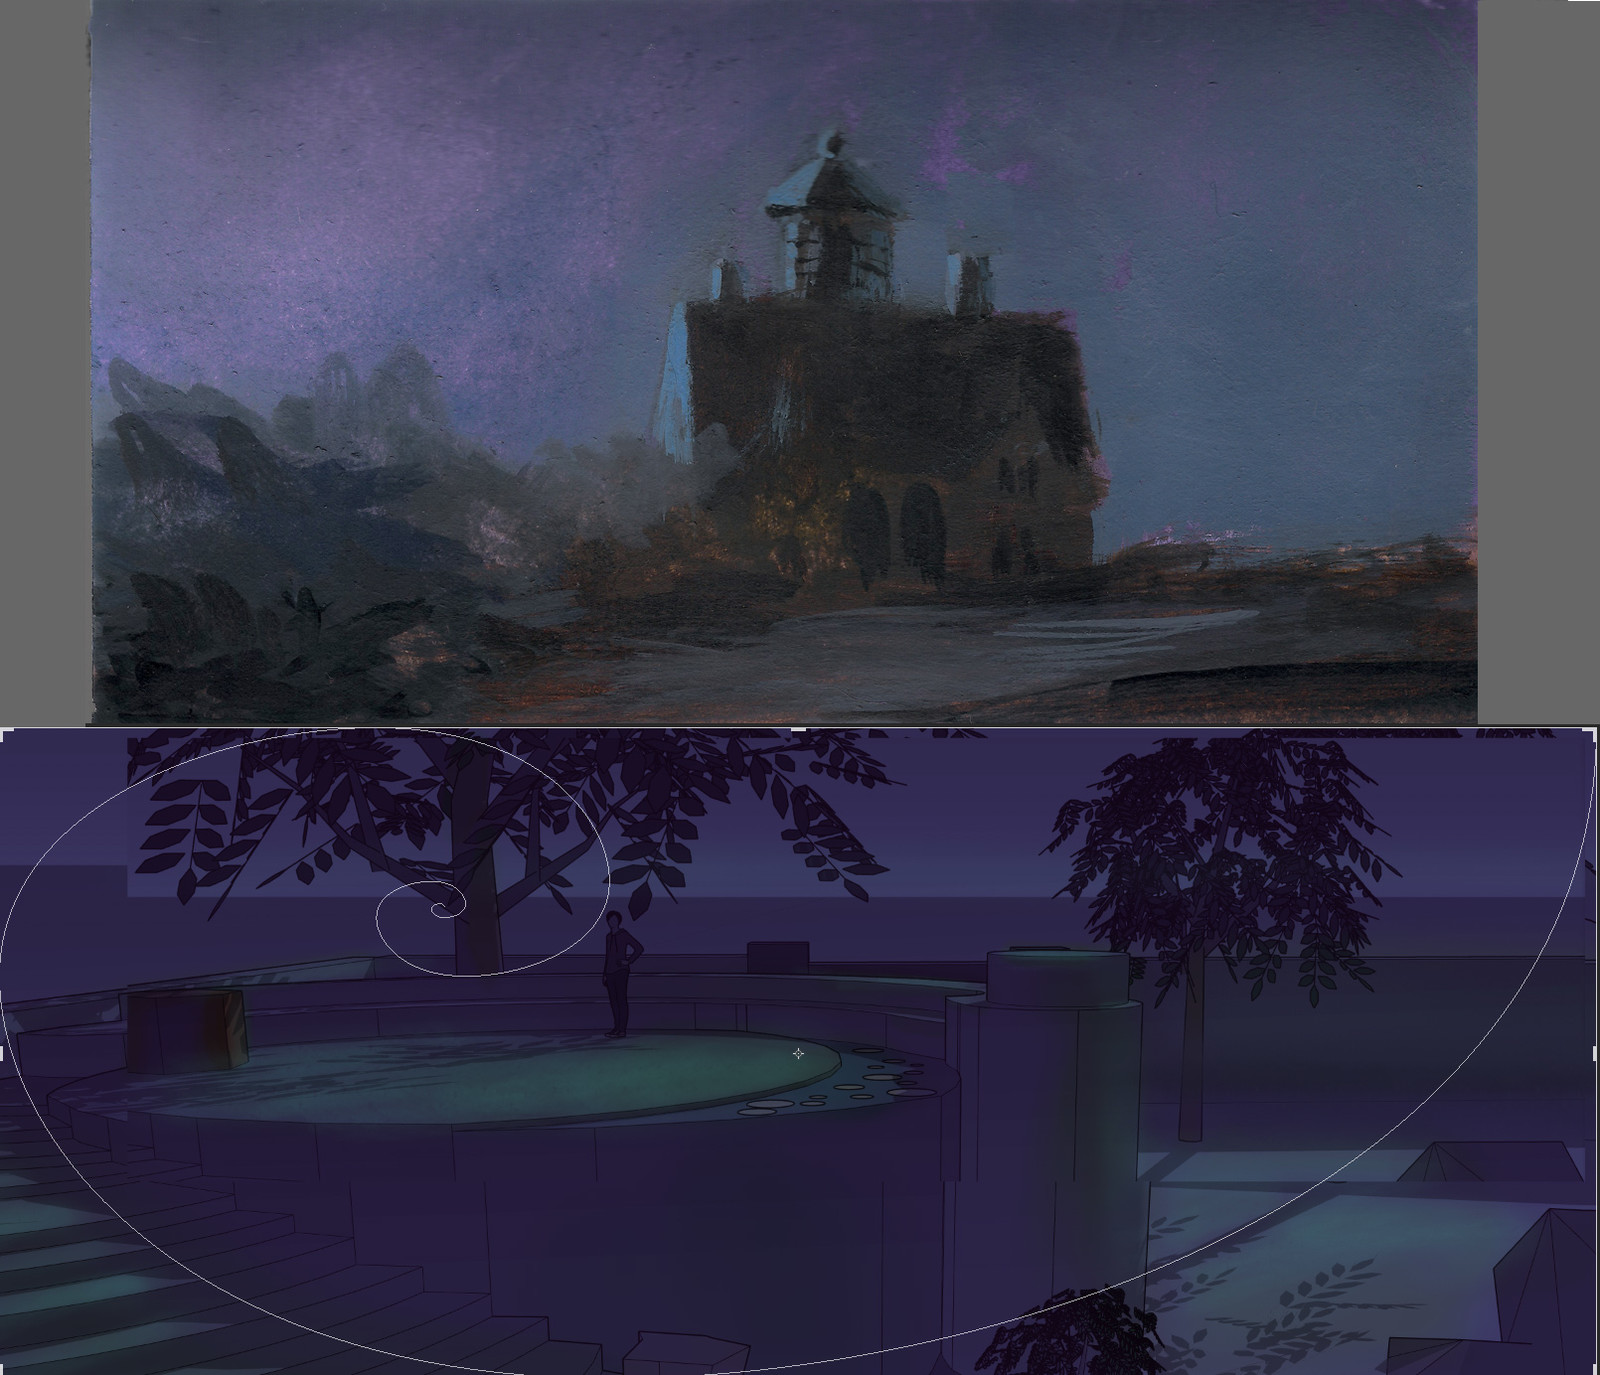 I built a quick, incredibly rough model and color corrected a screen shot of it in PS modeled after a study I did in watercolor and gouache of an old lighthouse in RI.